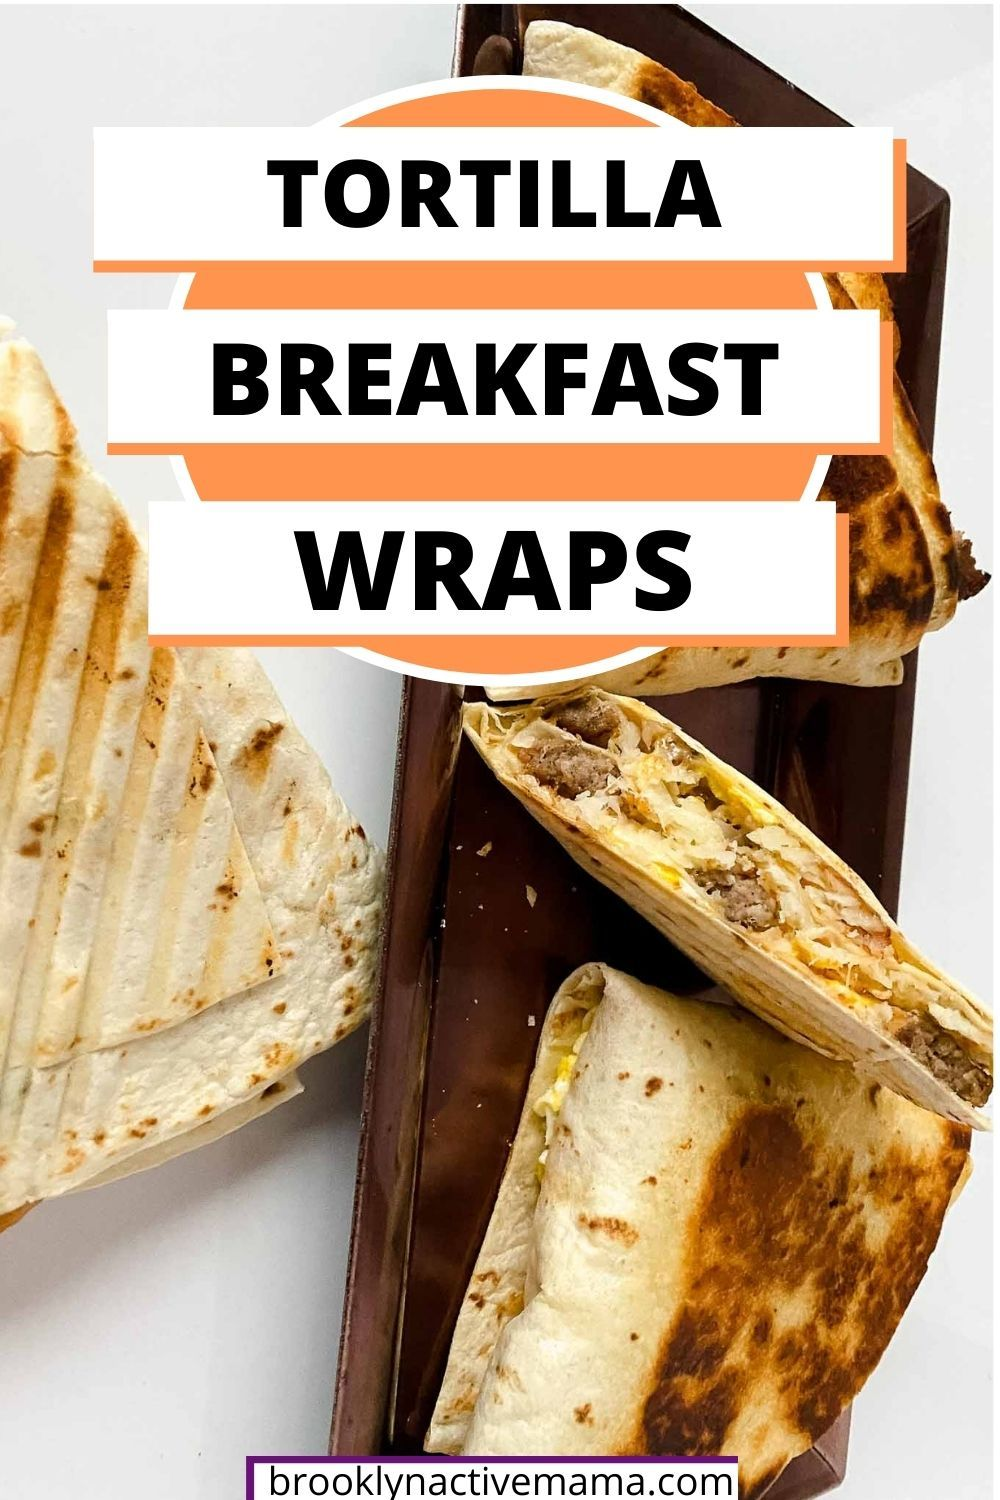 Tik Tok Tortilla Wrap Hack Breakfast Wrap With Hash Browns Eggs Cheese And Sausage In 2021 Breakfast Wraps Tortilla Wraps Amazing French Toast Recipe